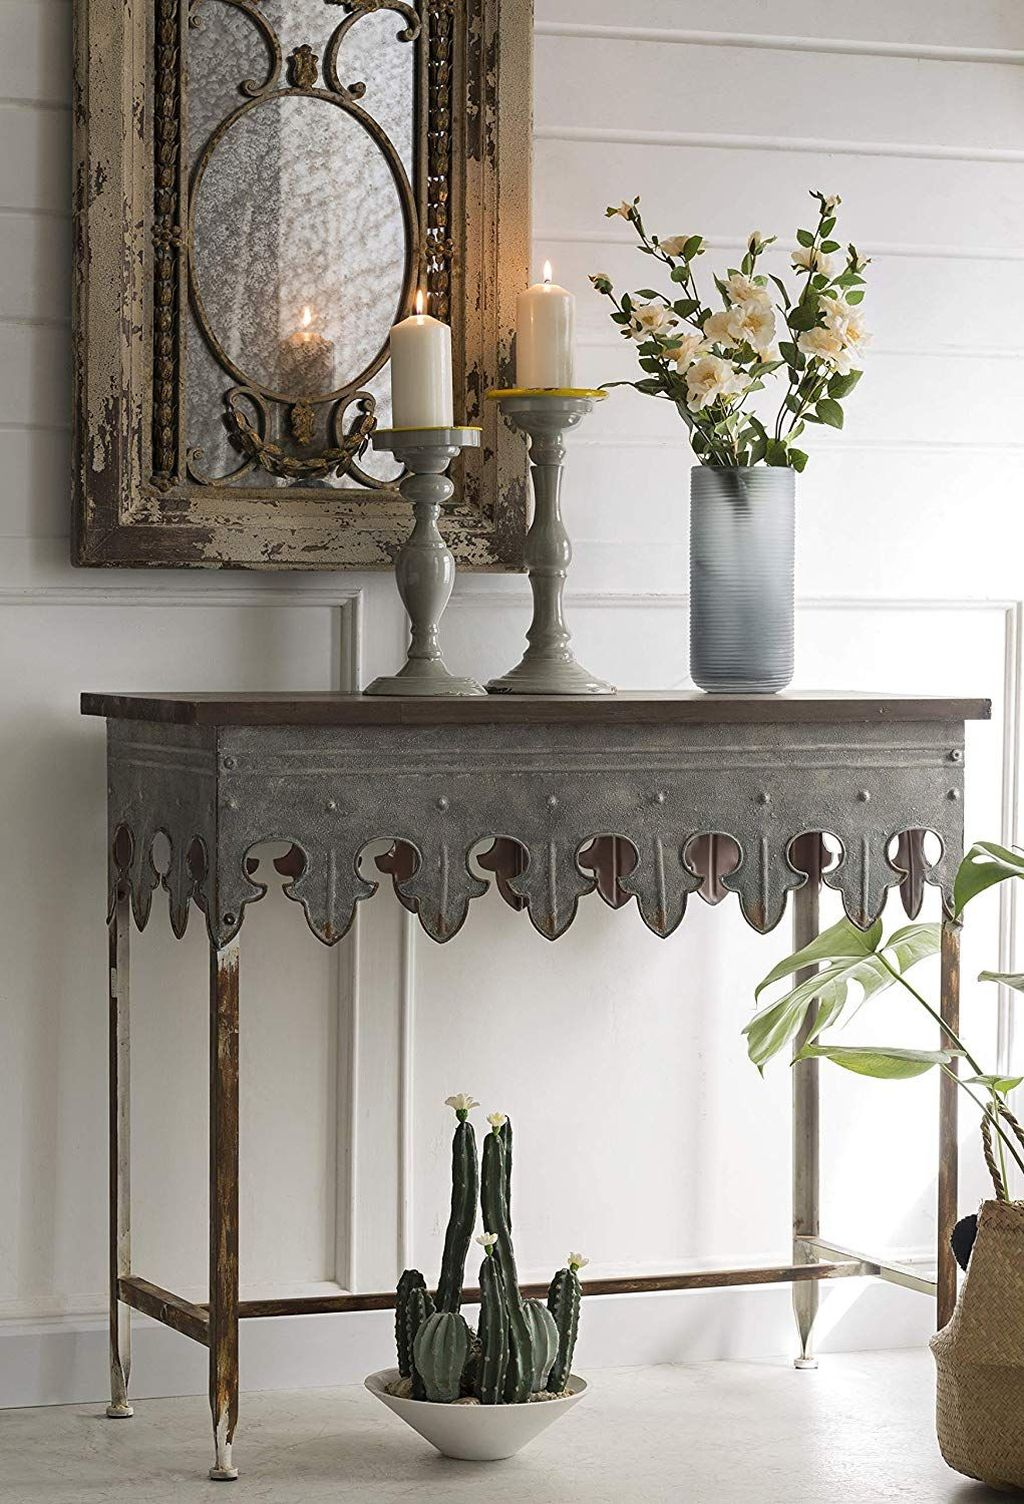 The Best Ideas To Decorate Interior Design With Farmhouse Style 10